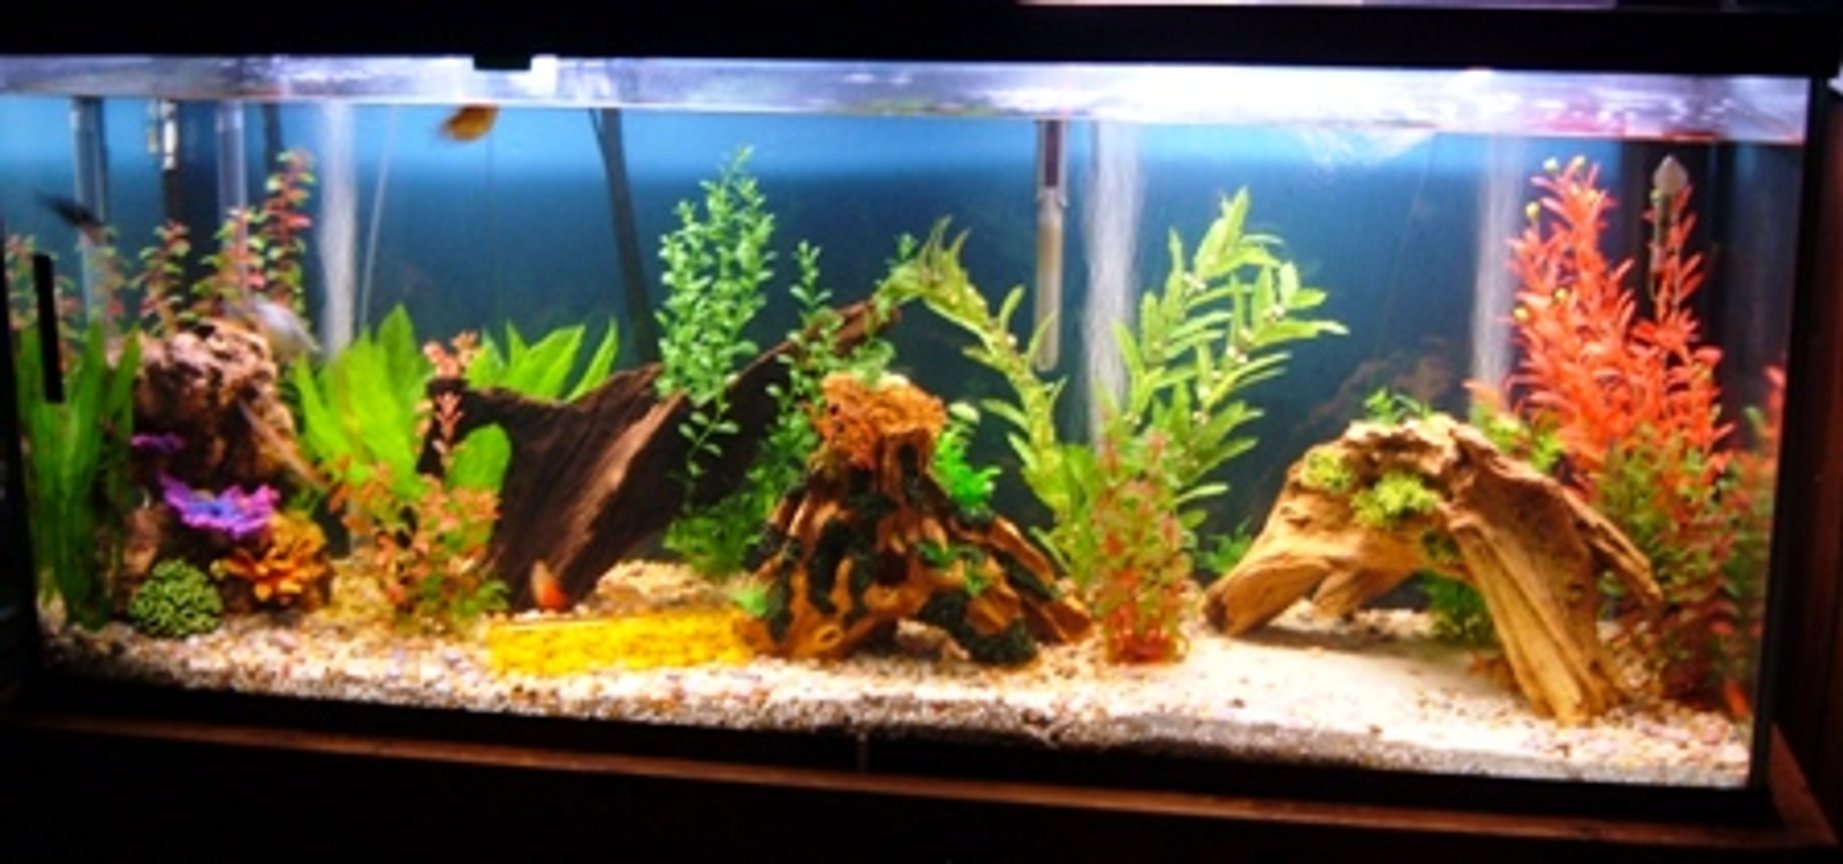 120 gallons freshwater fish tank (mostly fish and non-living decorations) - 2bgk 2 redtail sharks 4gouramis 4 loaches 2lake?catfish 2swordtail 2 molly 1cobaltbluelobster 1dwarf frog 3angelfish 2plecos